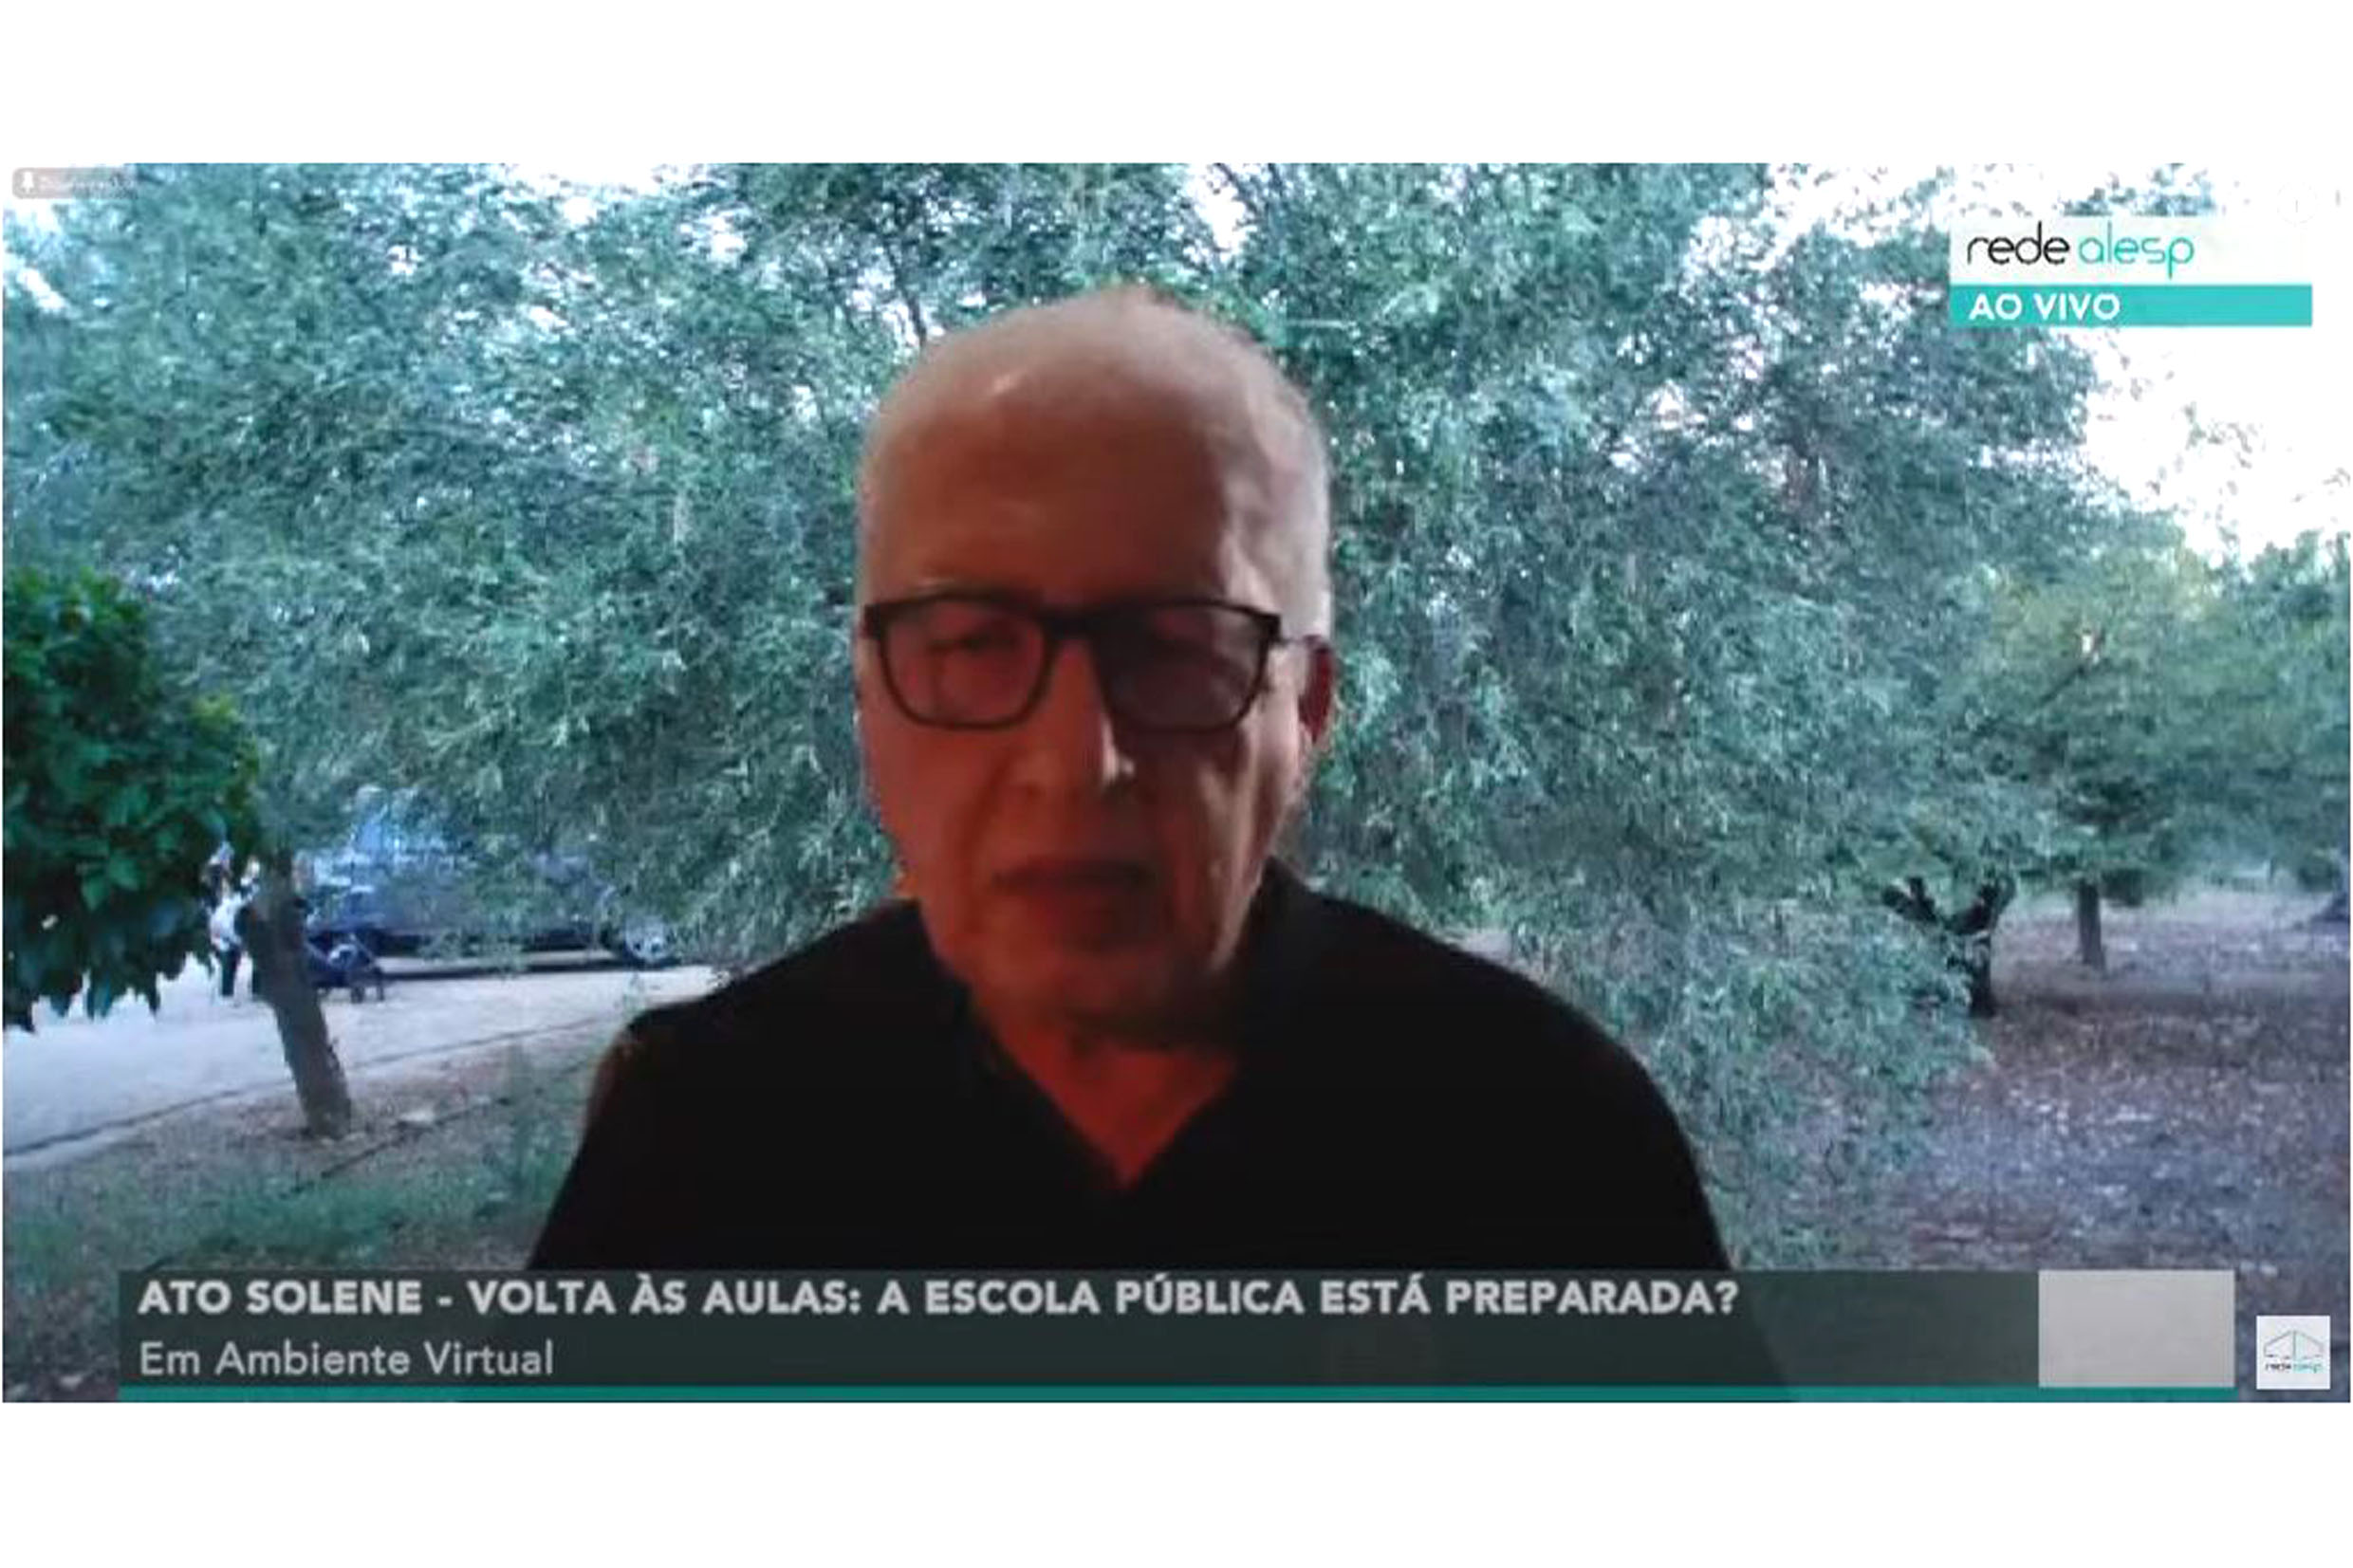 Dr Hélio Bacha<a style='float:right' href='https://www3.al.sp.gov.br/repositorio/noticia/N-07-2020/fg251928.jpg' target=_blank><img src='/_img/material-file-download-white.png' width='14px' alt='Clique para baixar a imagem'></a>